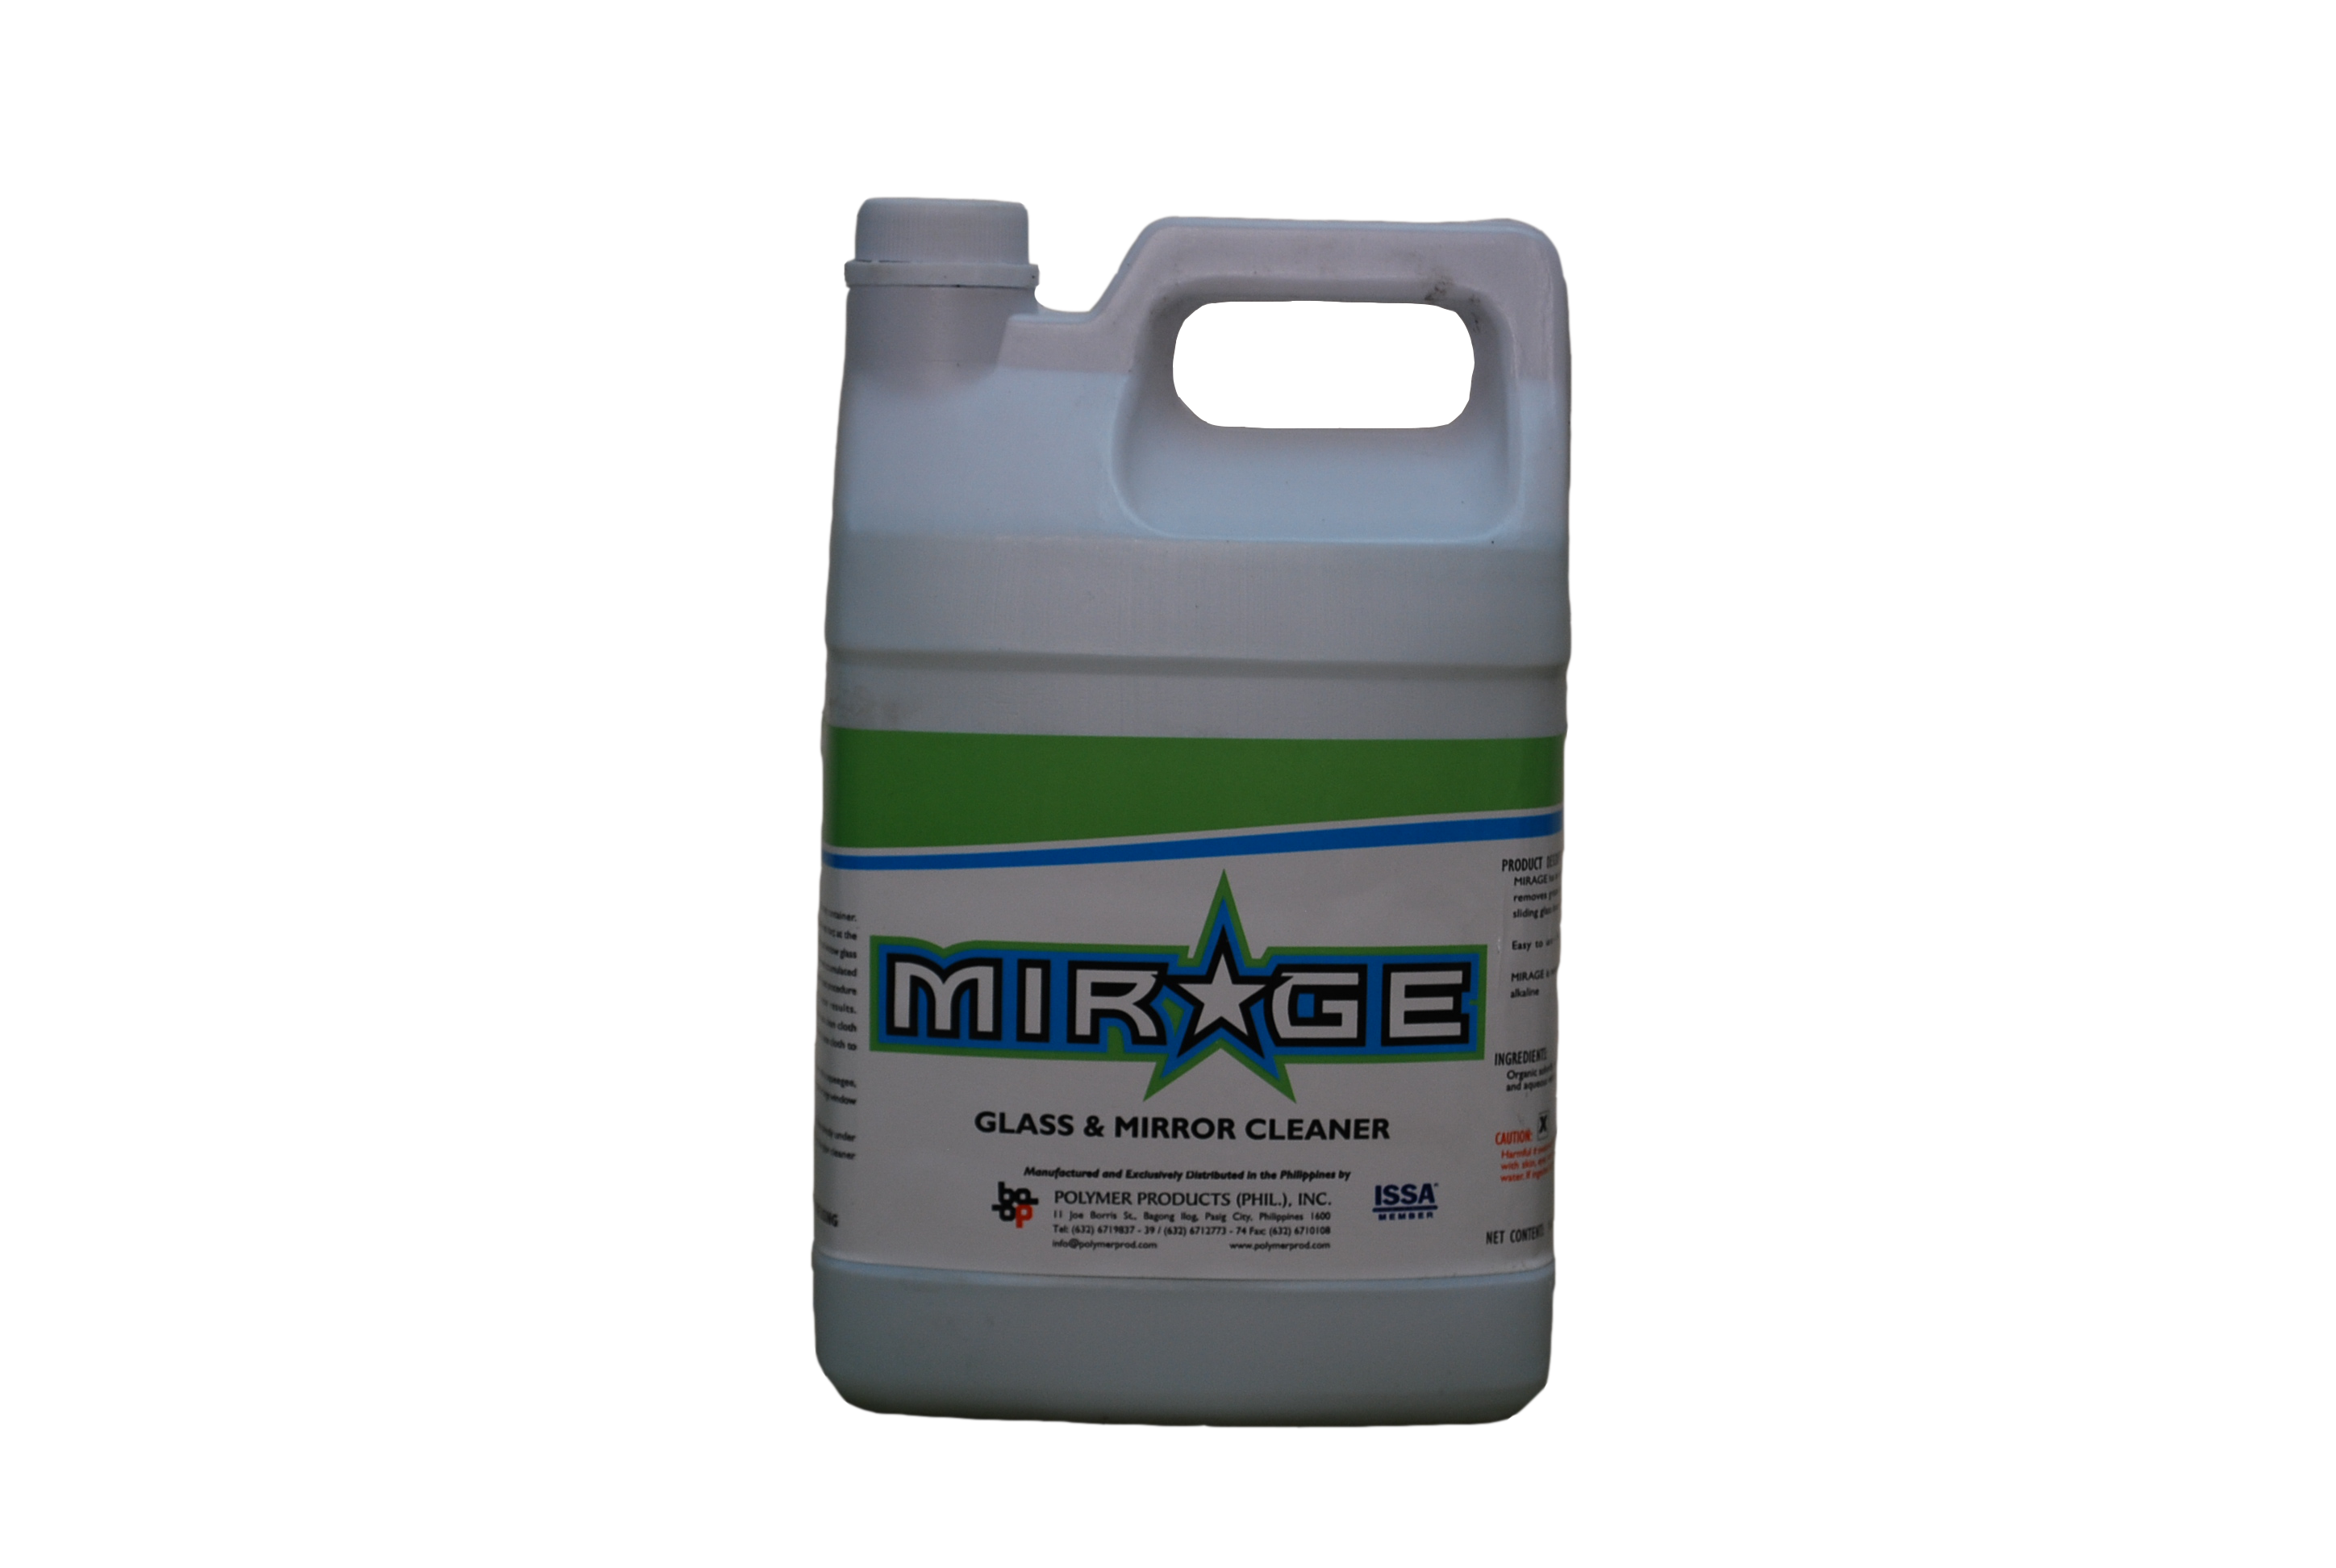 mirage cleaning chemicals philippines